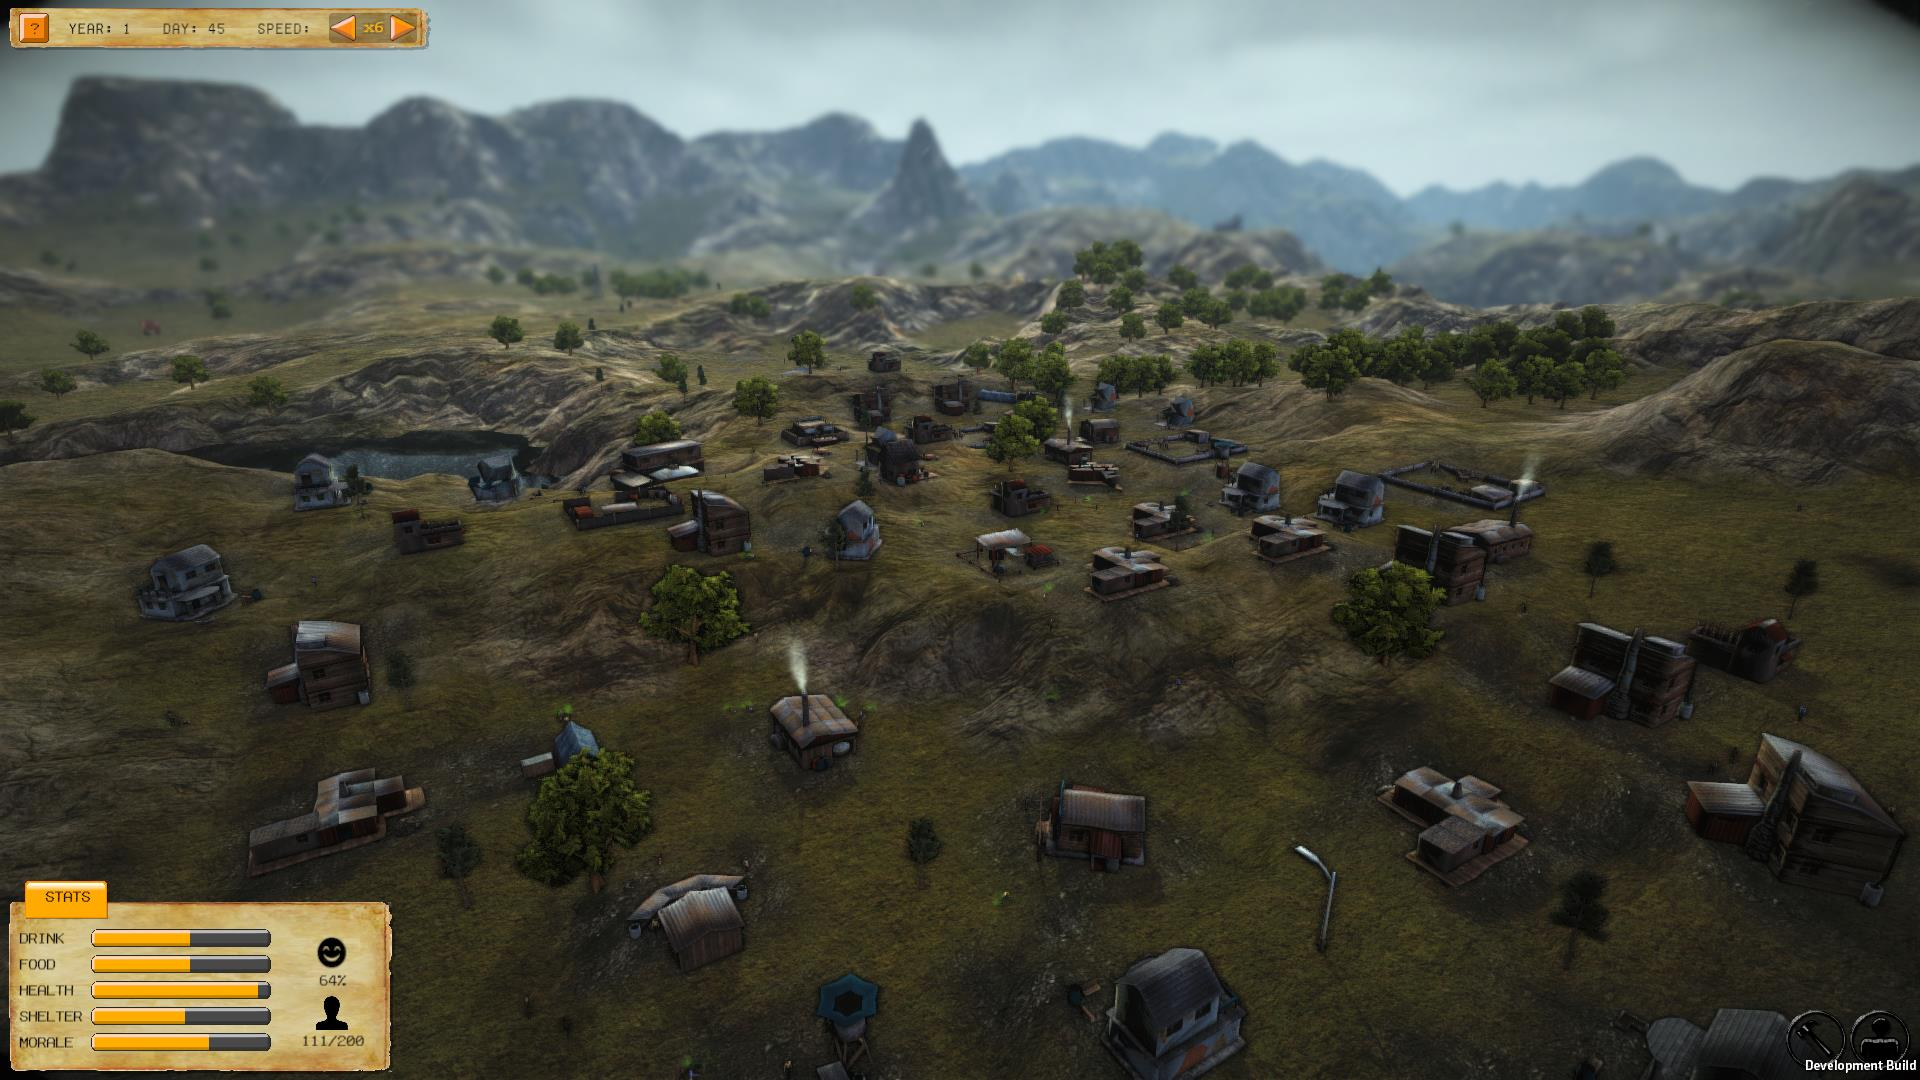 Atomic Society Post Apocalyptic City Builder Update 5